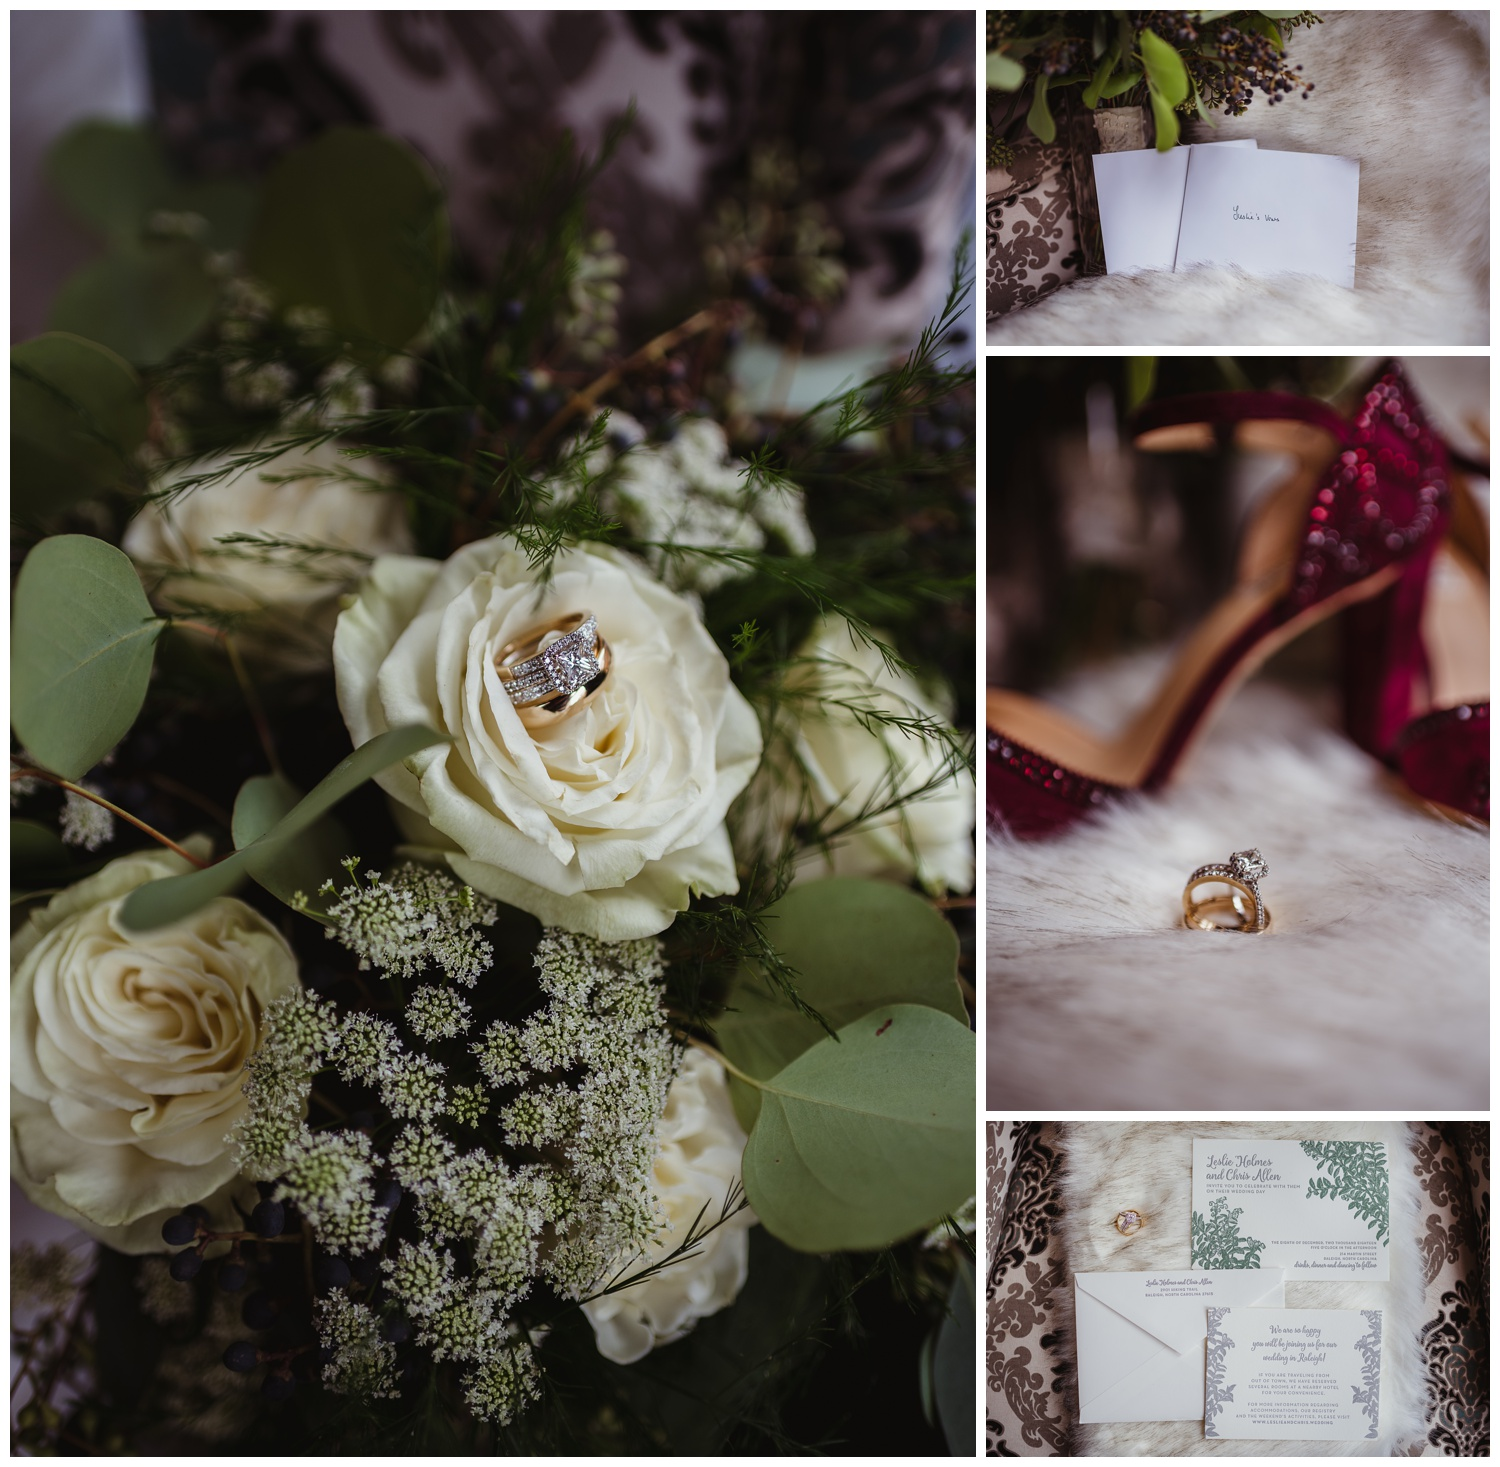 Wedding details include red high heels, white flowers, and floral invites for the wedding in downtown Raleigh, photos by Rose Trail Images.